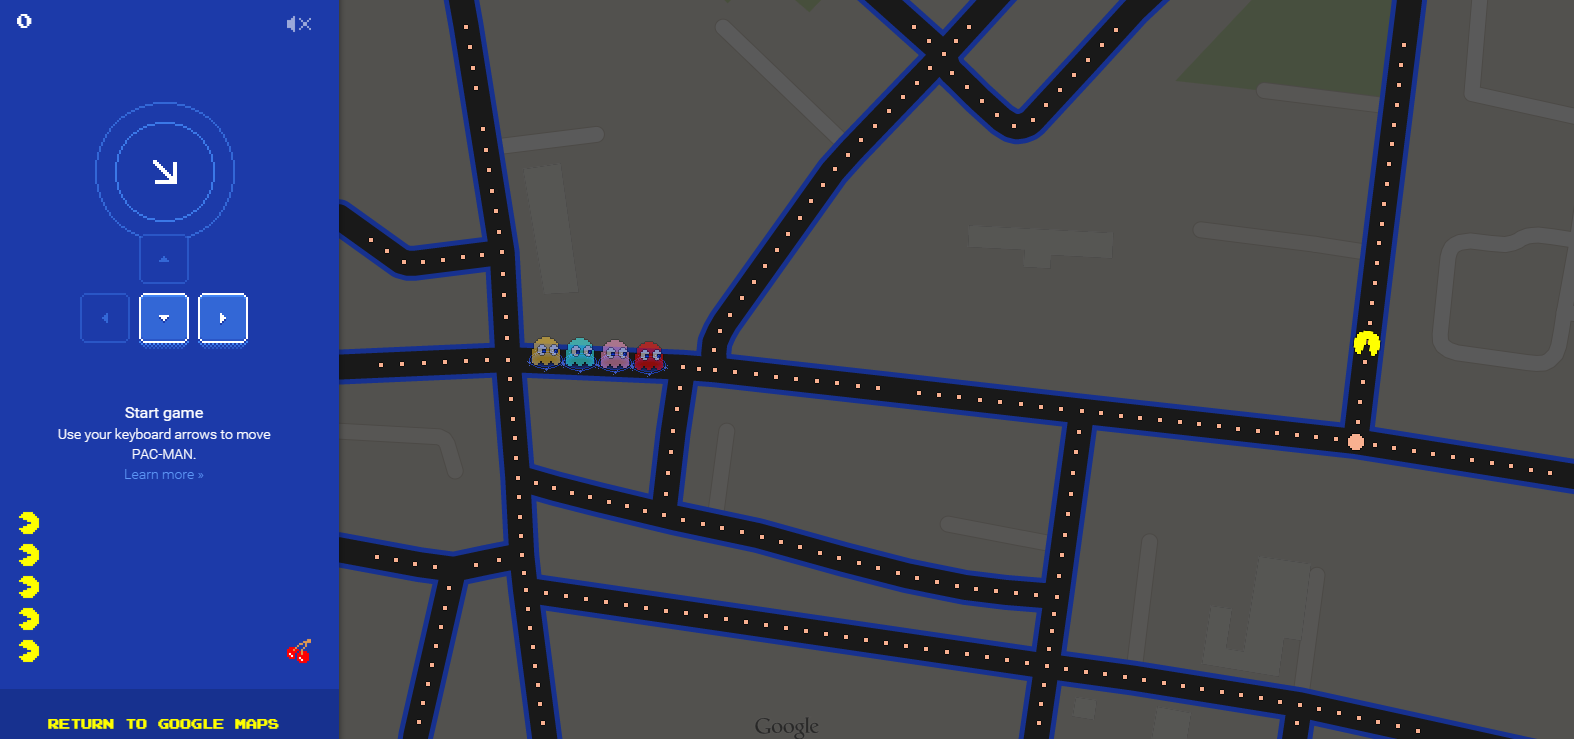 GoogleMapsPacMan Roundup: All of Google's jokes for April Fools' Day 2015